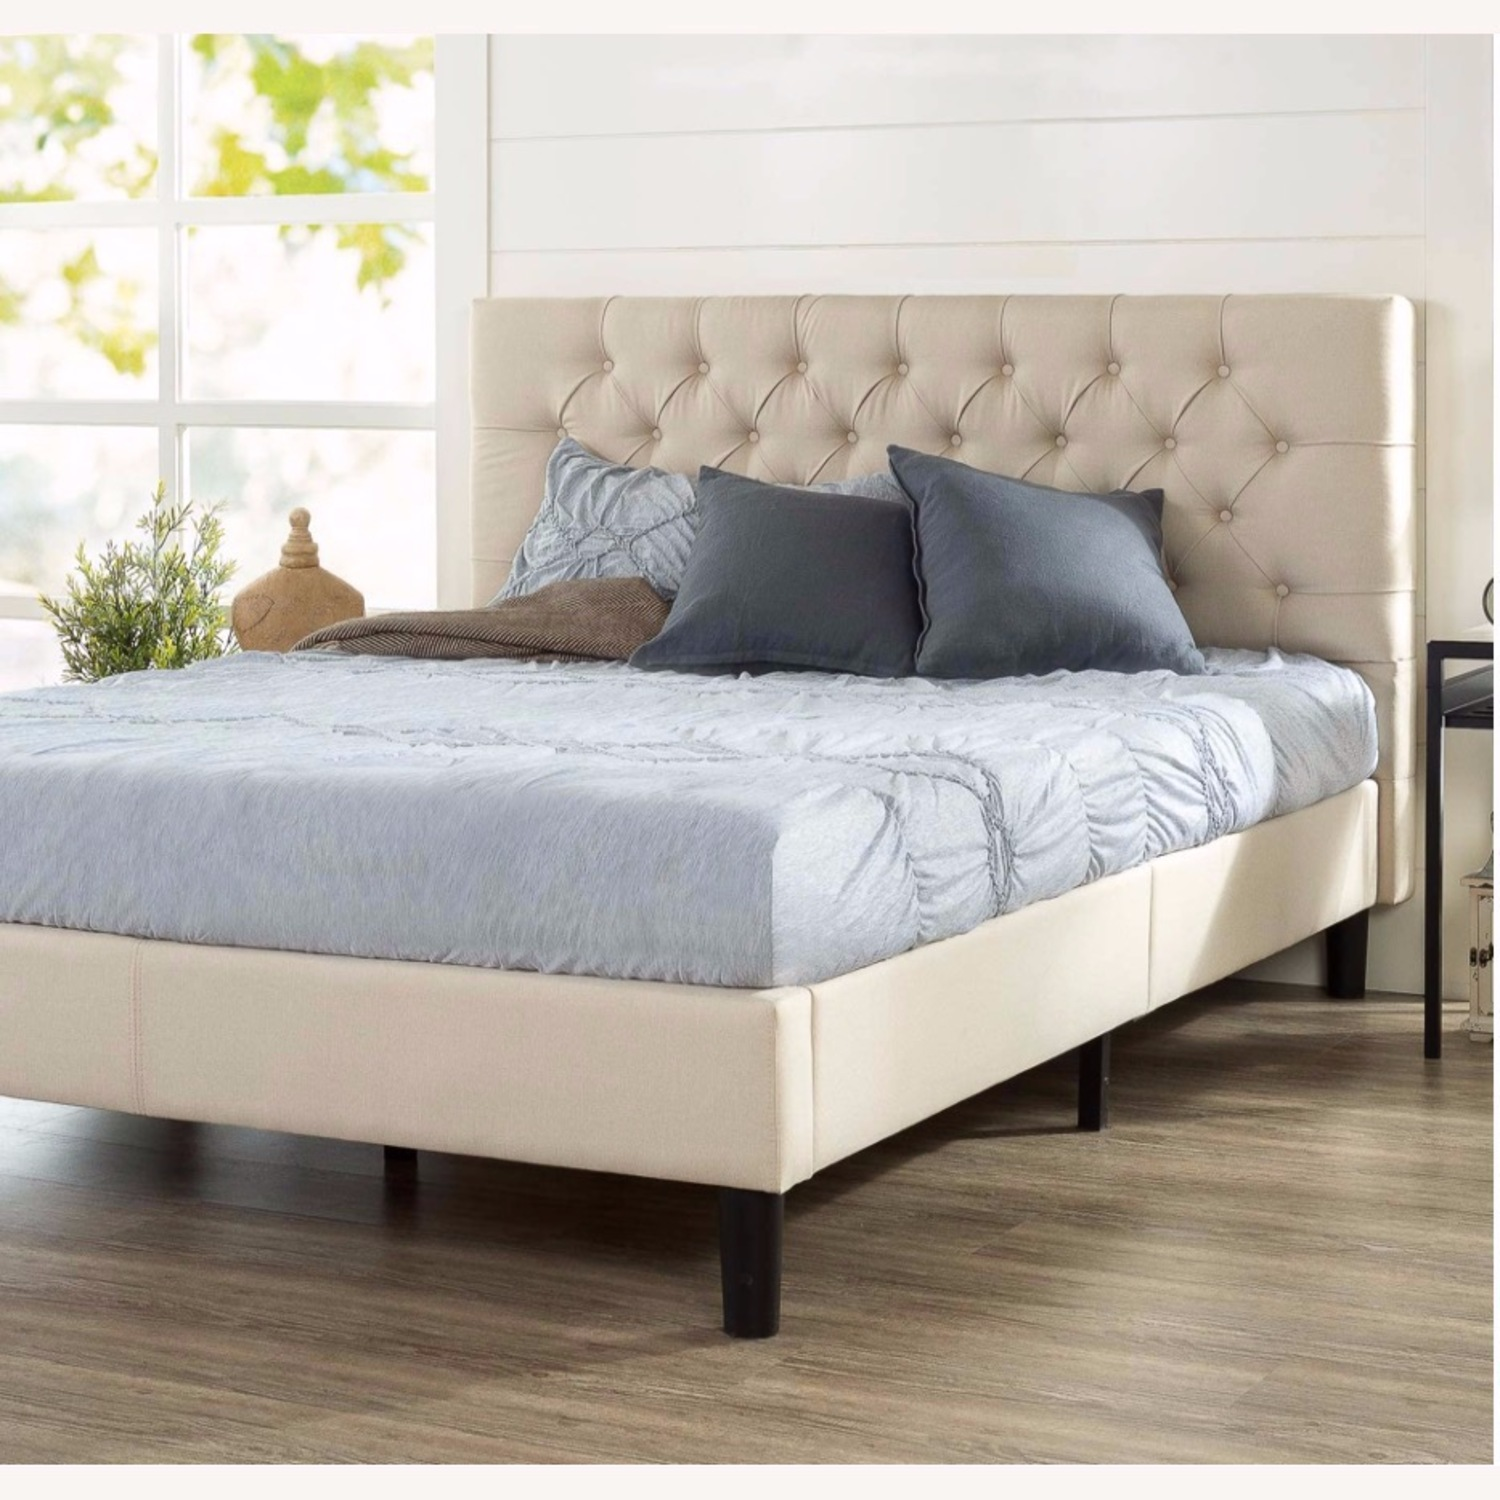 Zin Home Full Tufted Bed Frame - image-3